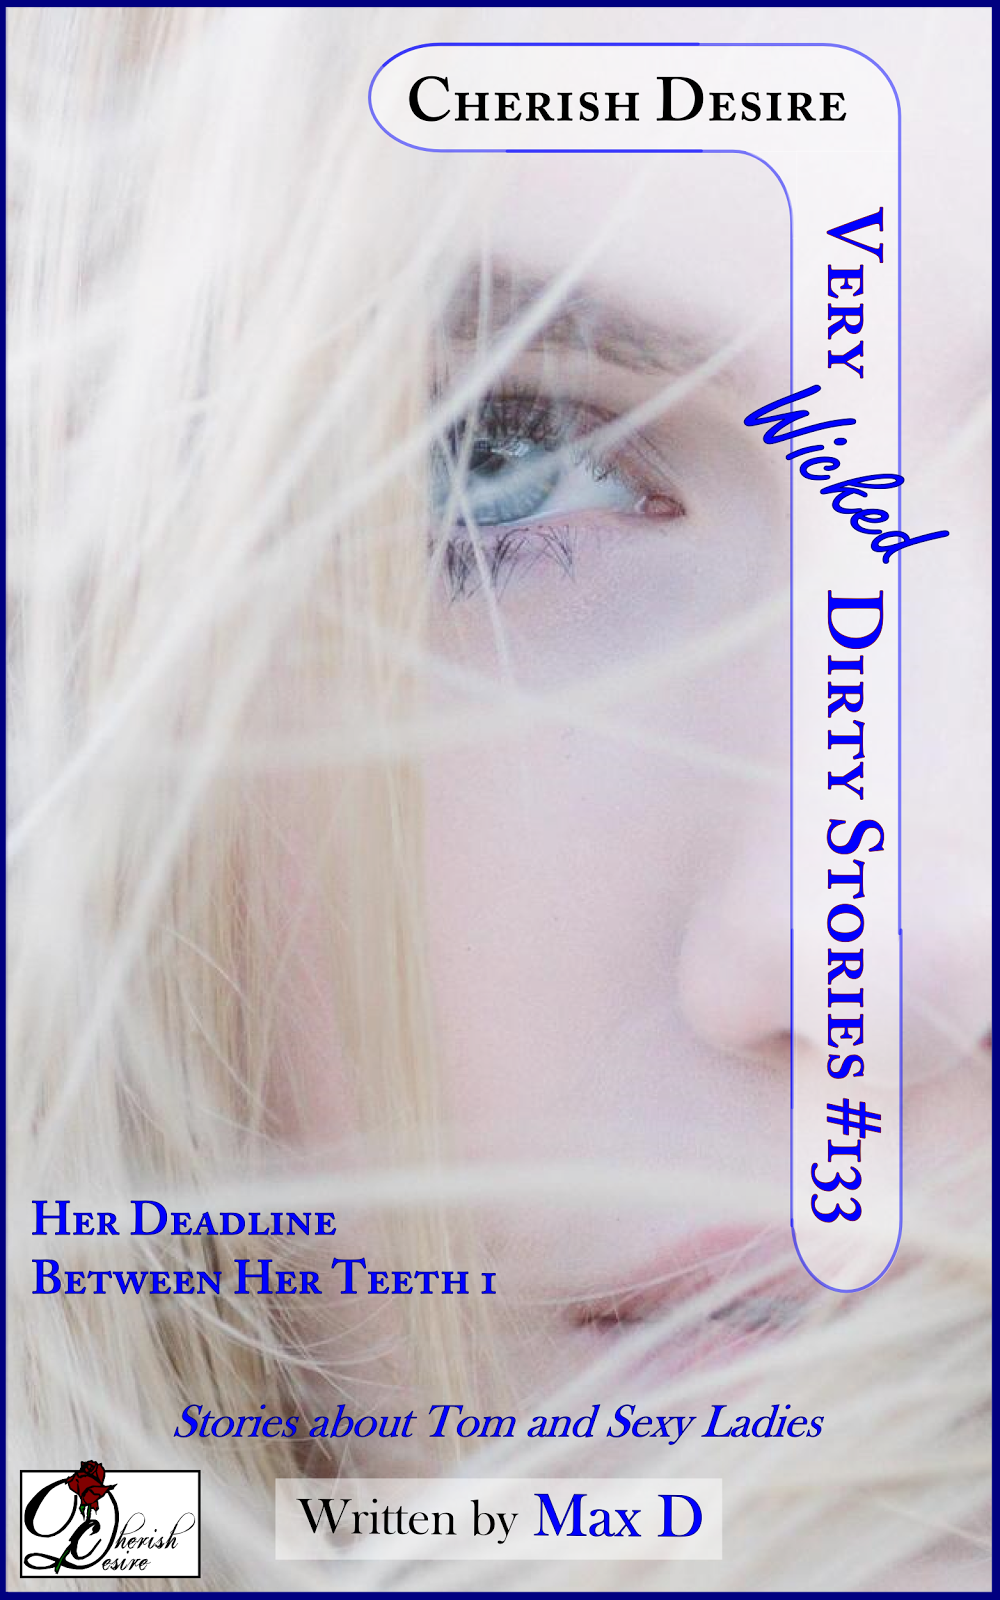 Cherish Desire: Very Wicked Dirty Stories #133, Max D, erotica